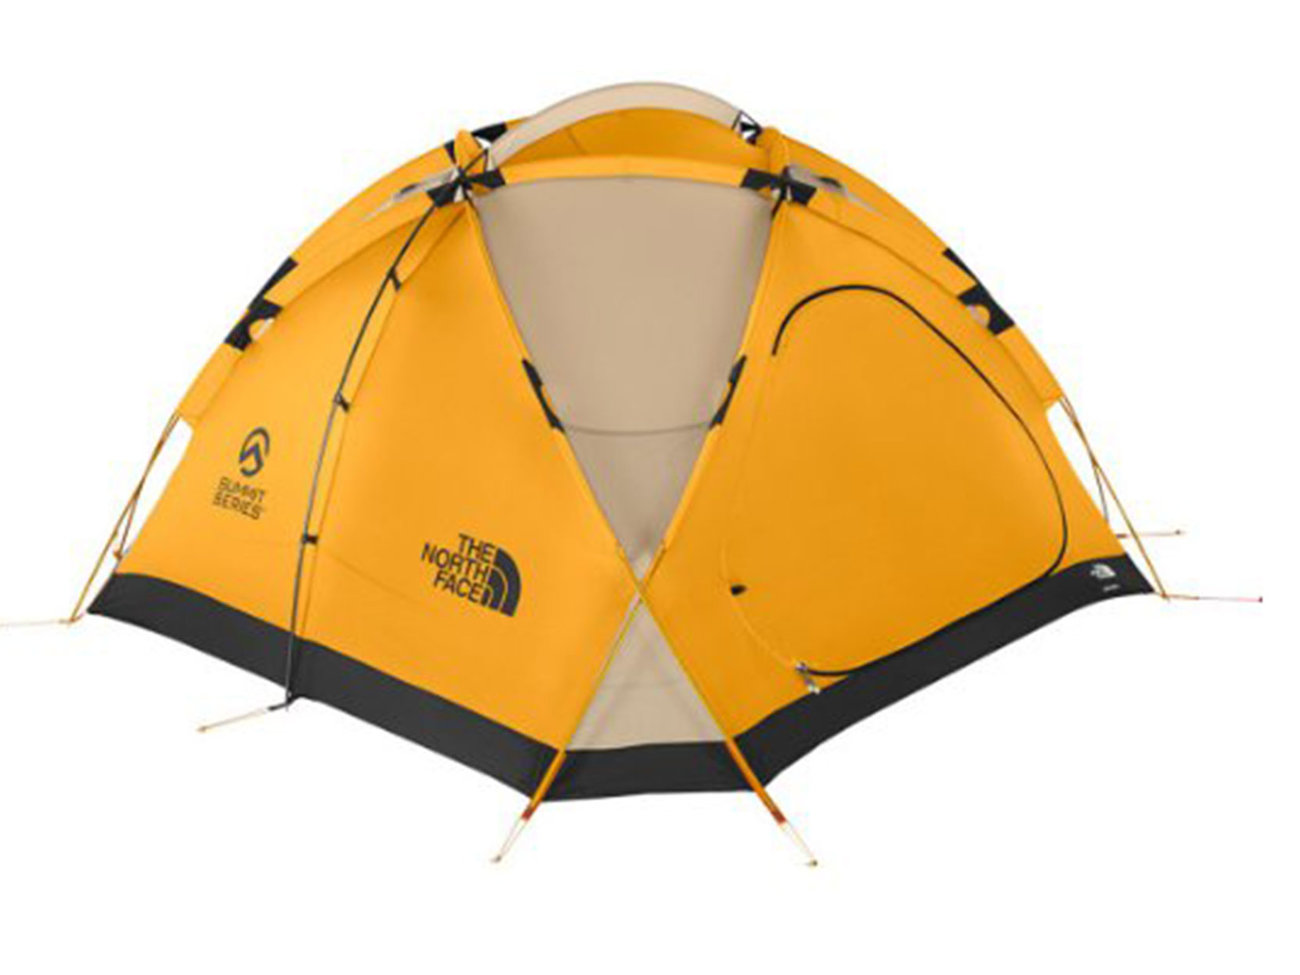 northface-tent-ADVENTURE-GUIDE1115.jpg